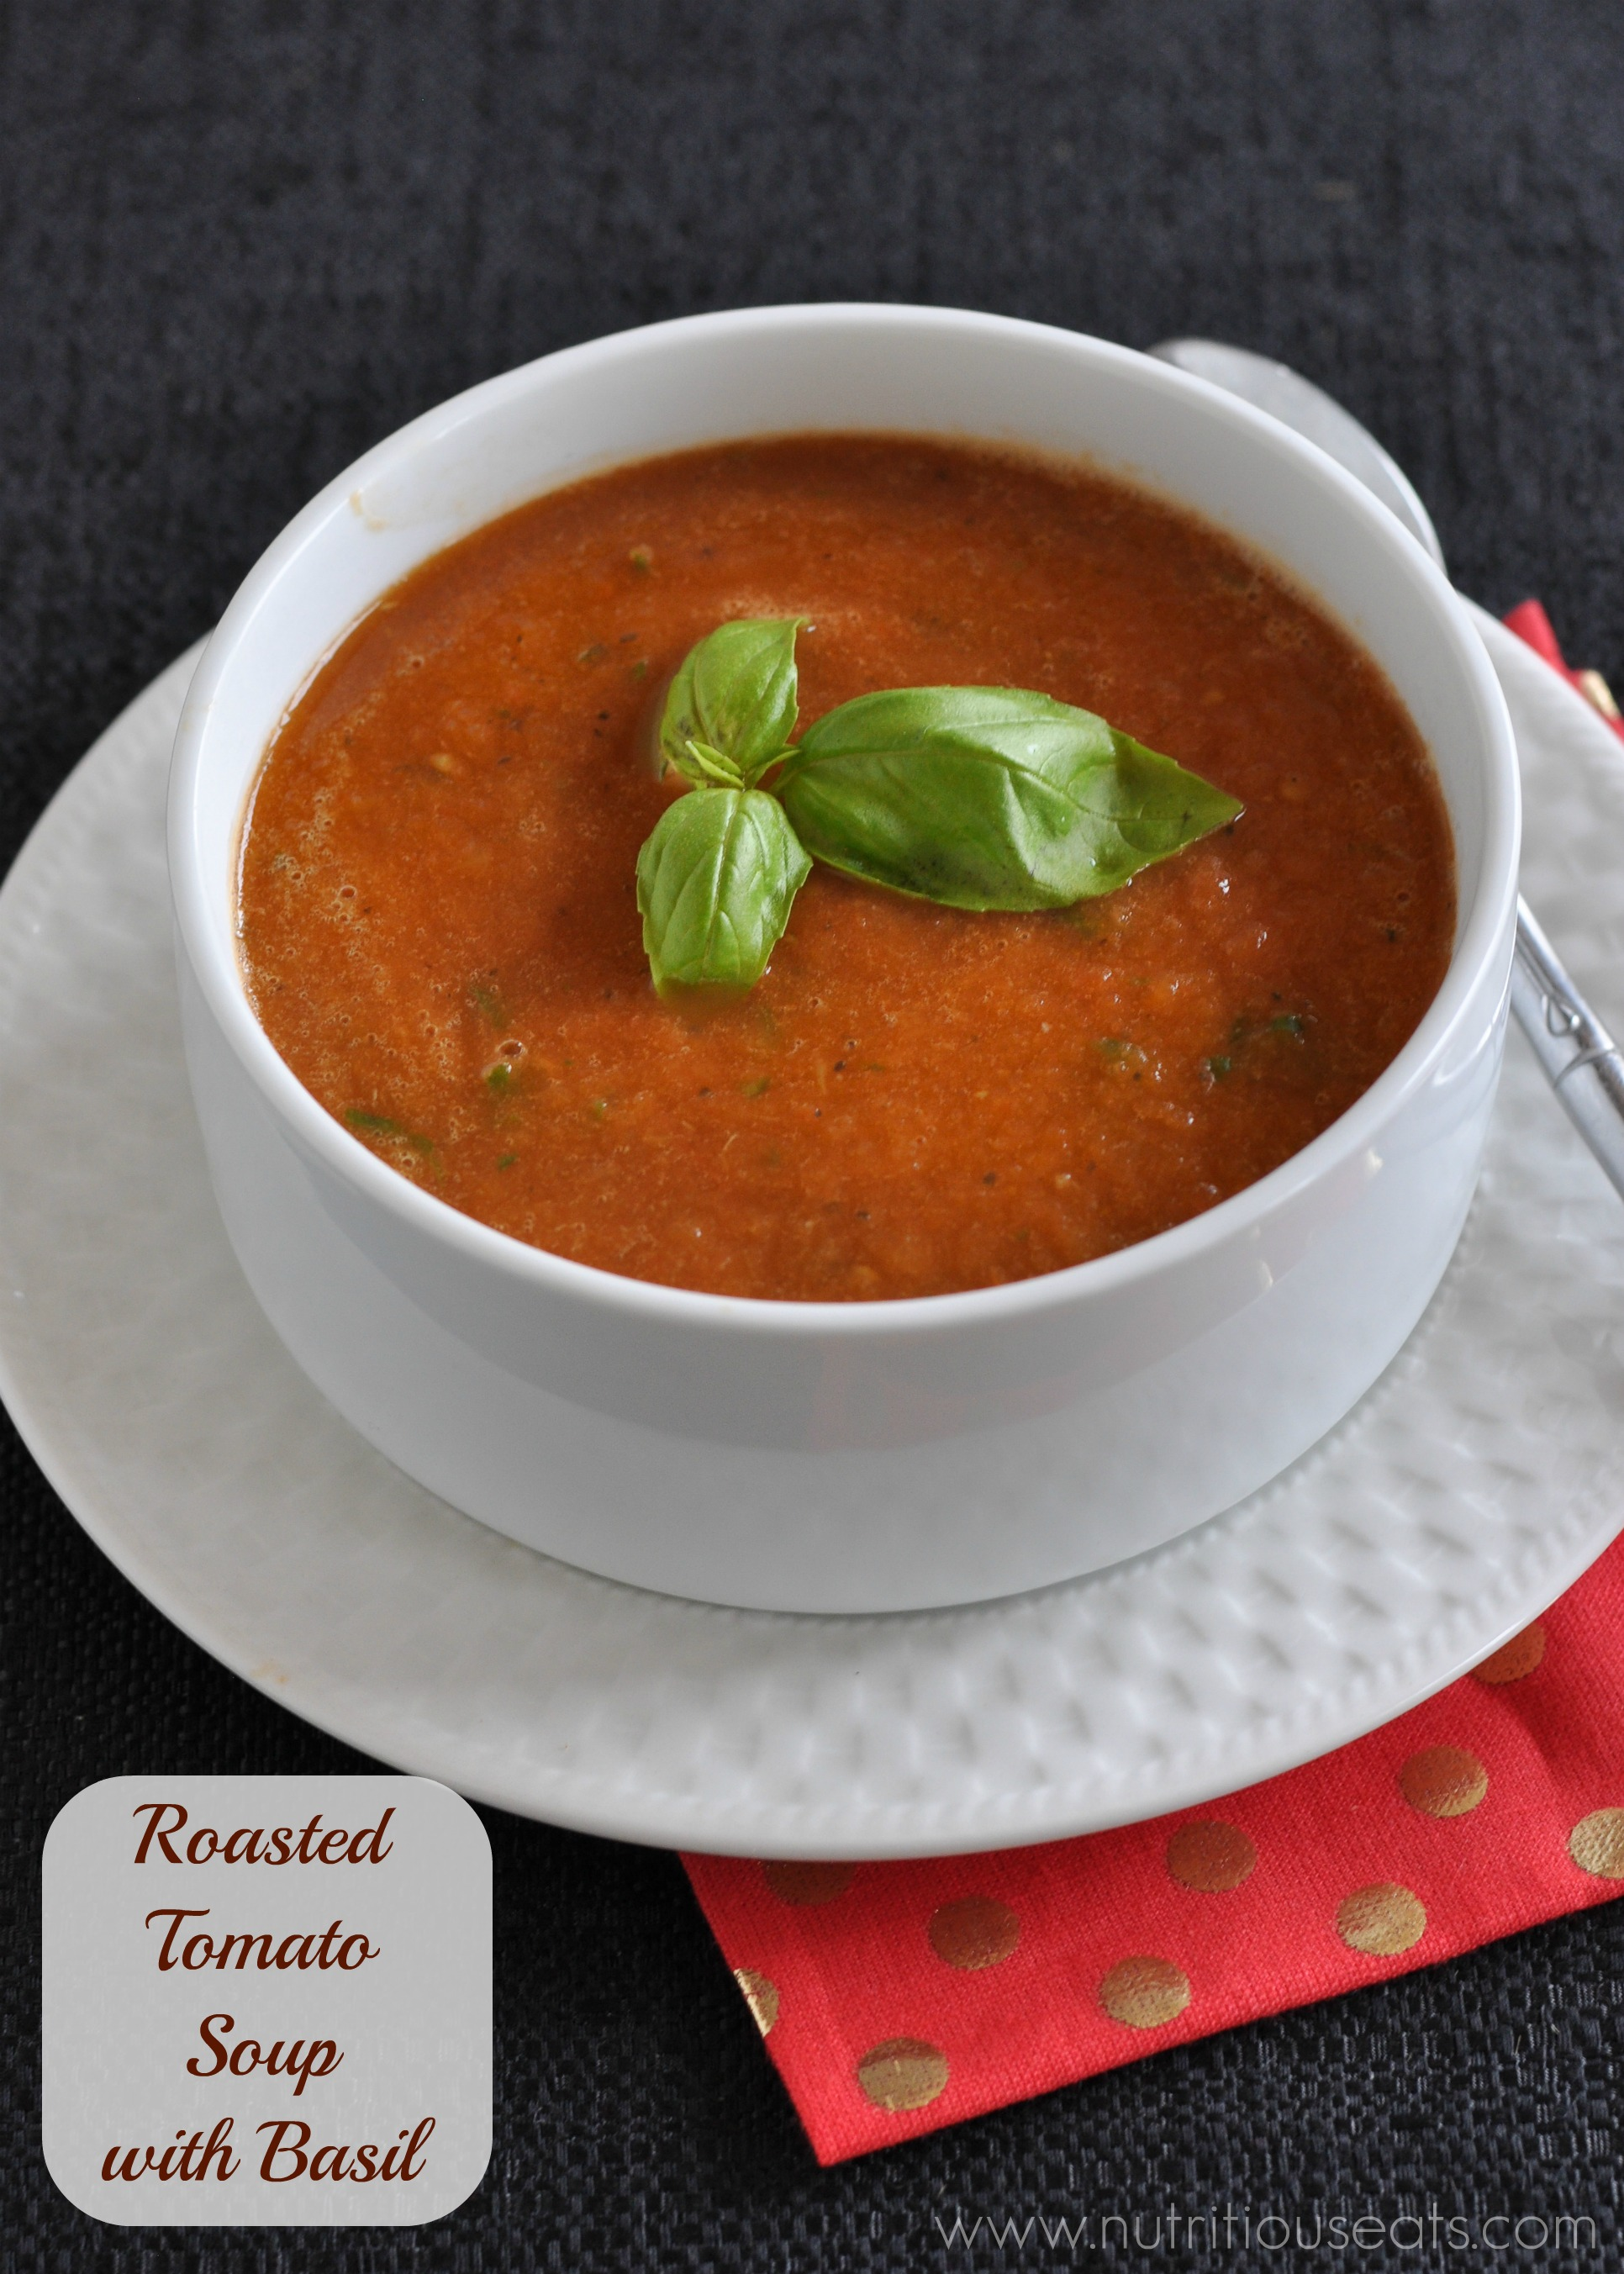 Roasted Tomato Soup with Basil | www.nutritiouseats.com - Nutritious ...